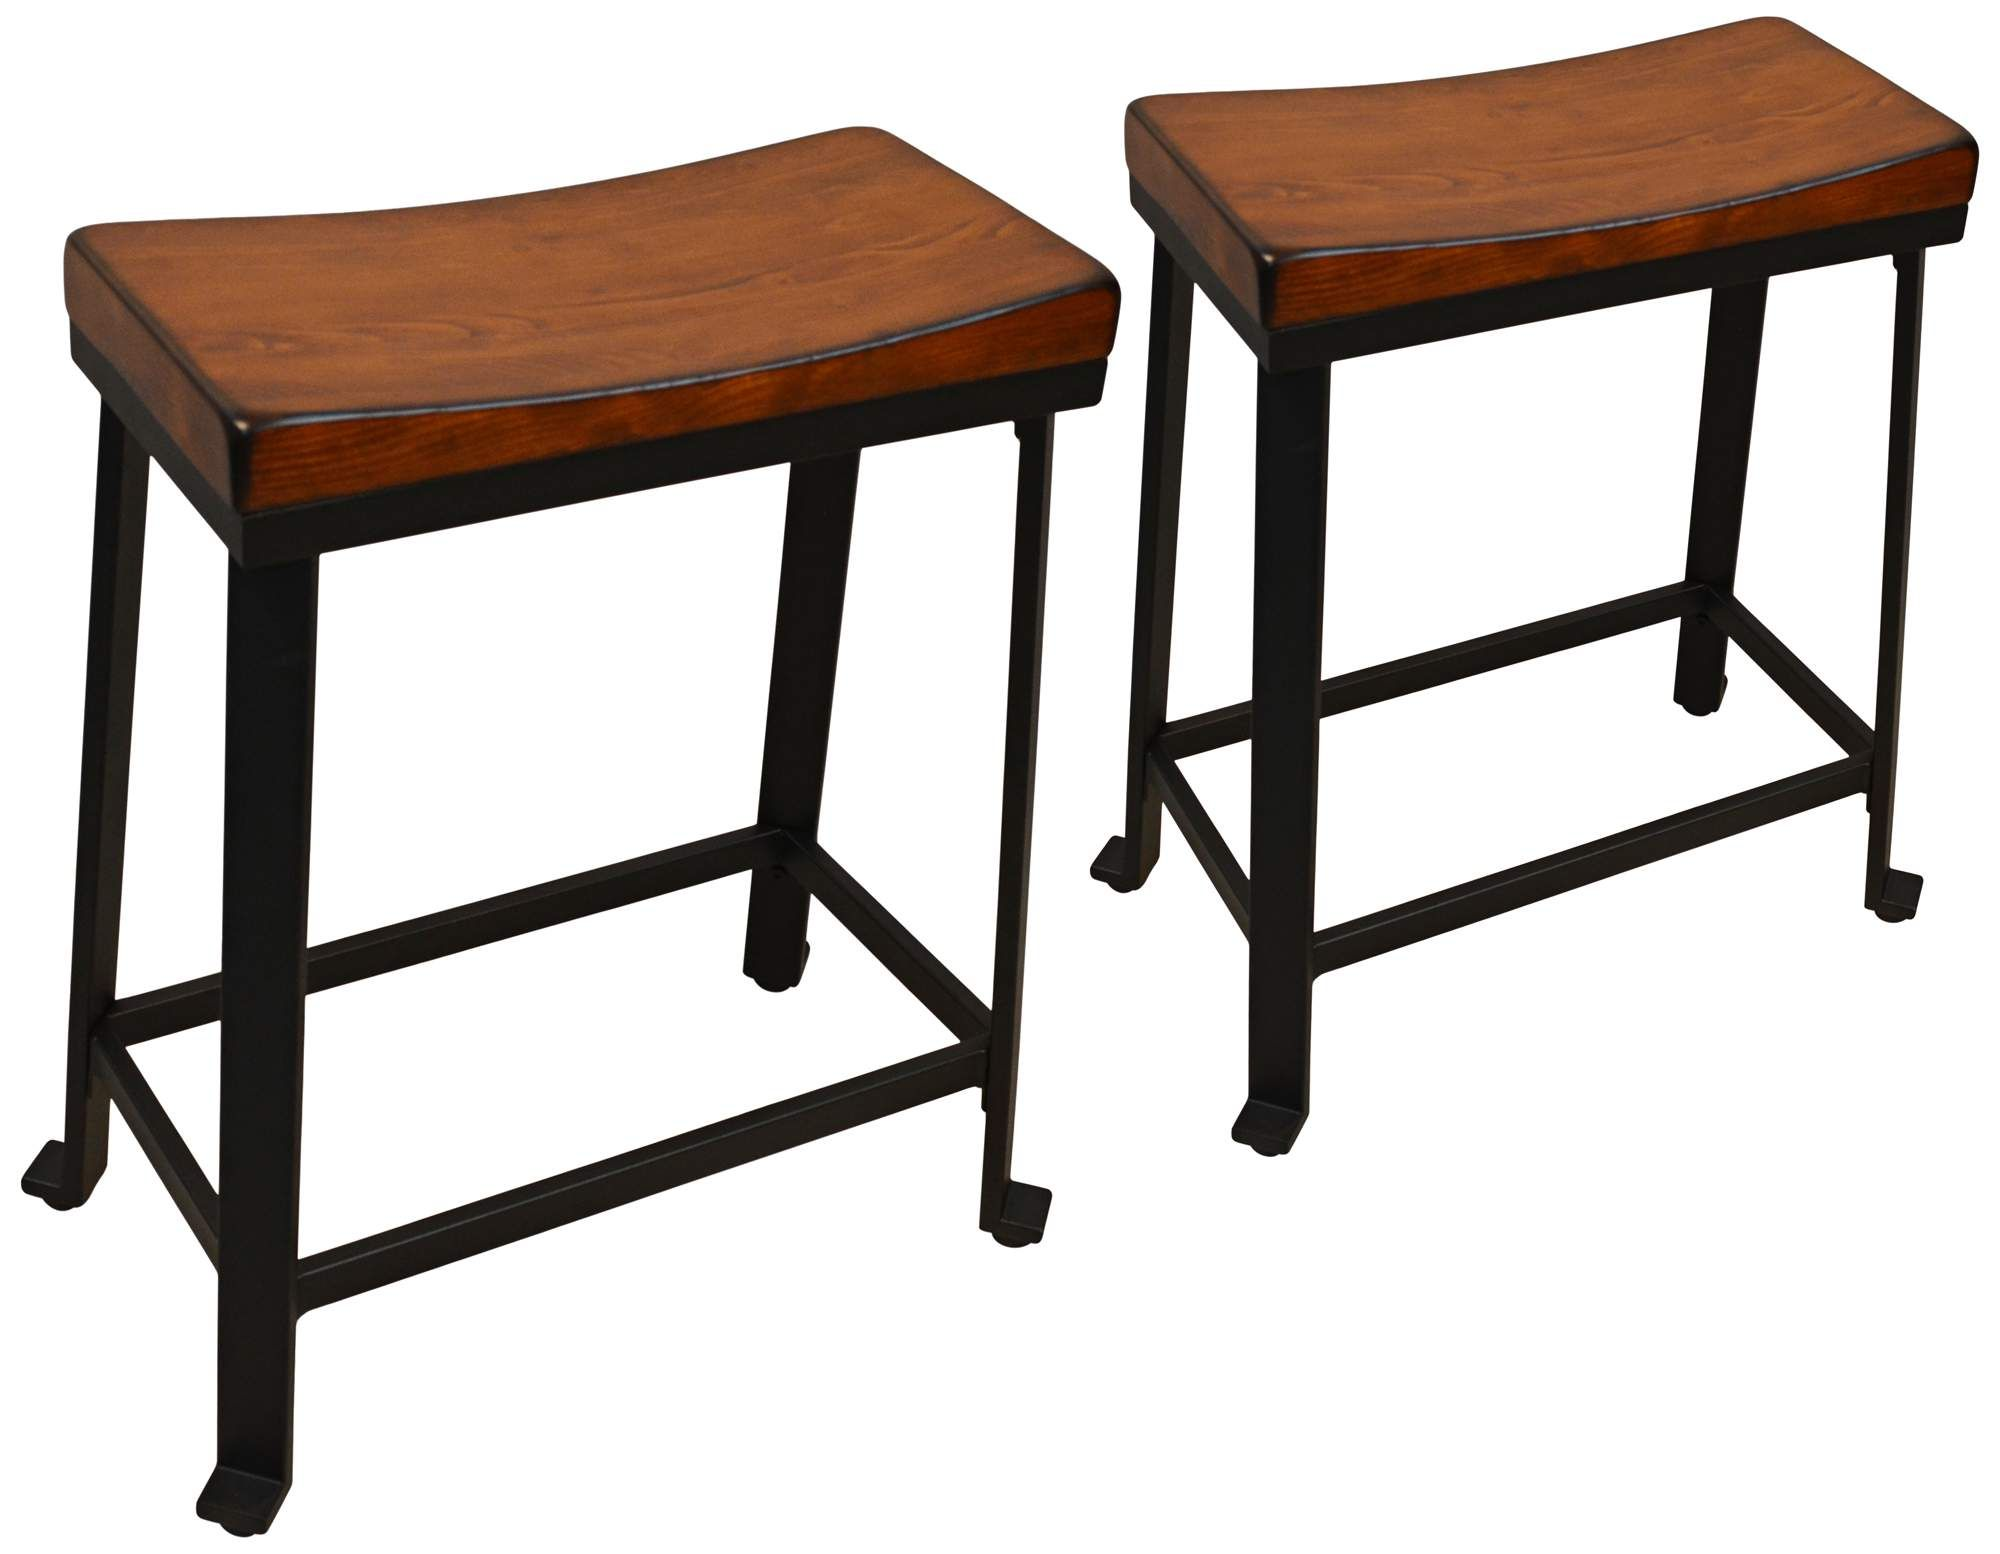 Thea 24 Inch Chestnut Wood Saddle Seat Counter Stools Set Of 2